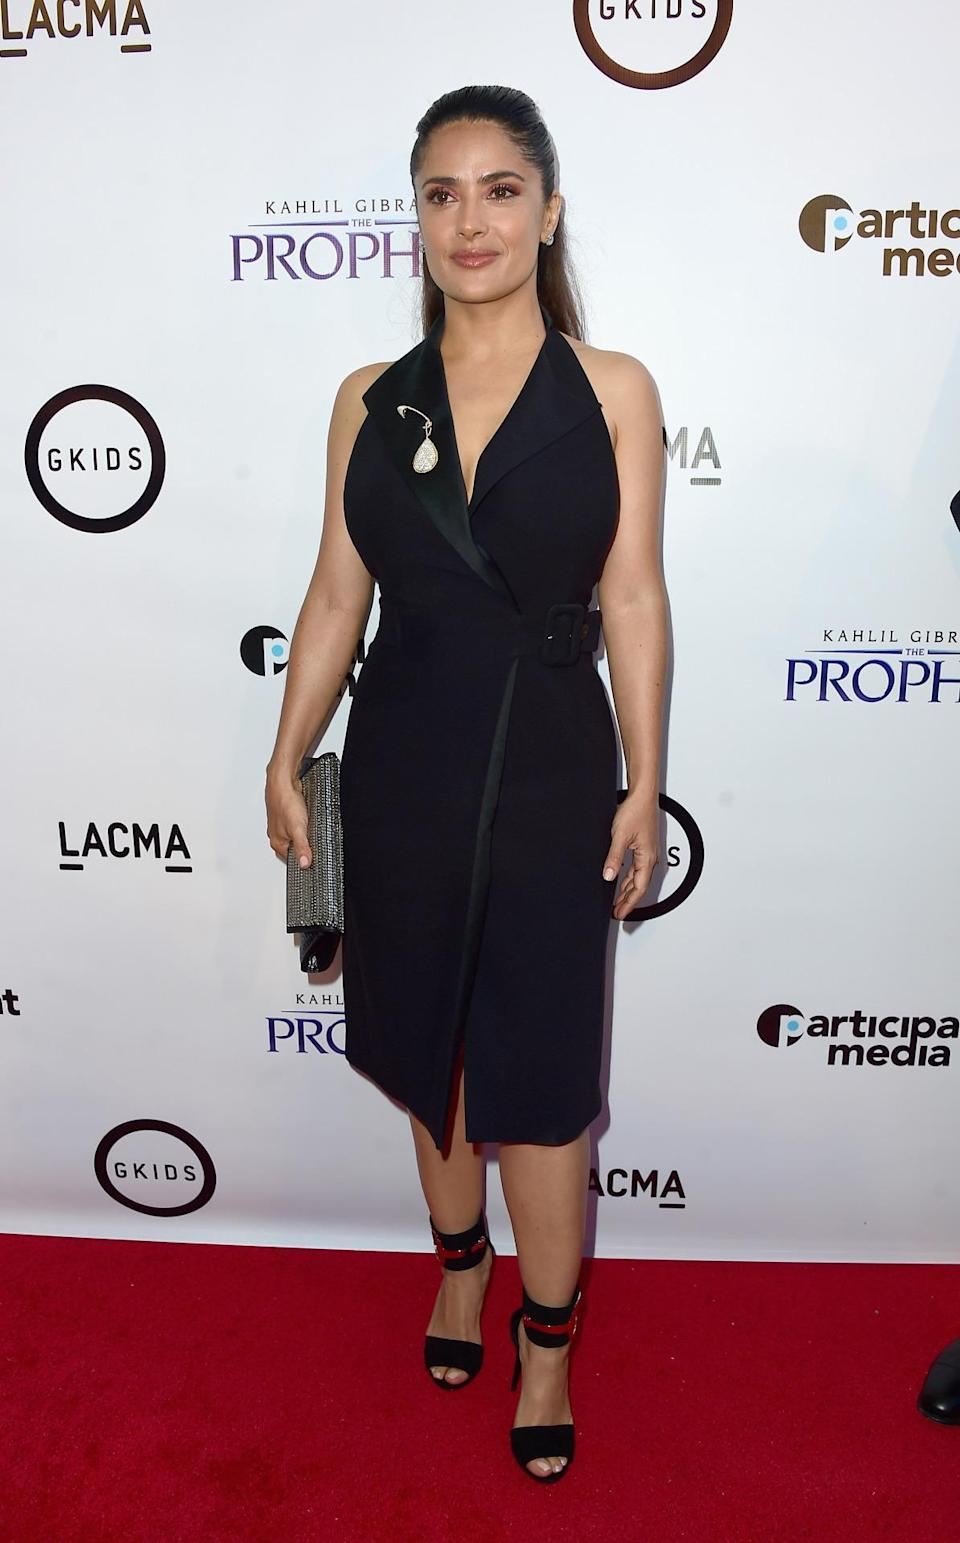 <p>The actress attended the premiere of <i>Khalil Gibran's The Prophet</i> with her 7-year-old daughter, Valentina Paloma, in a classic wrapped tuxedo dress from the Parisian fashion house.<br><br></p>